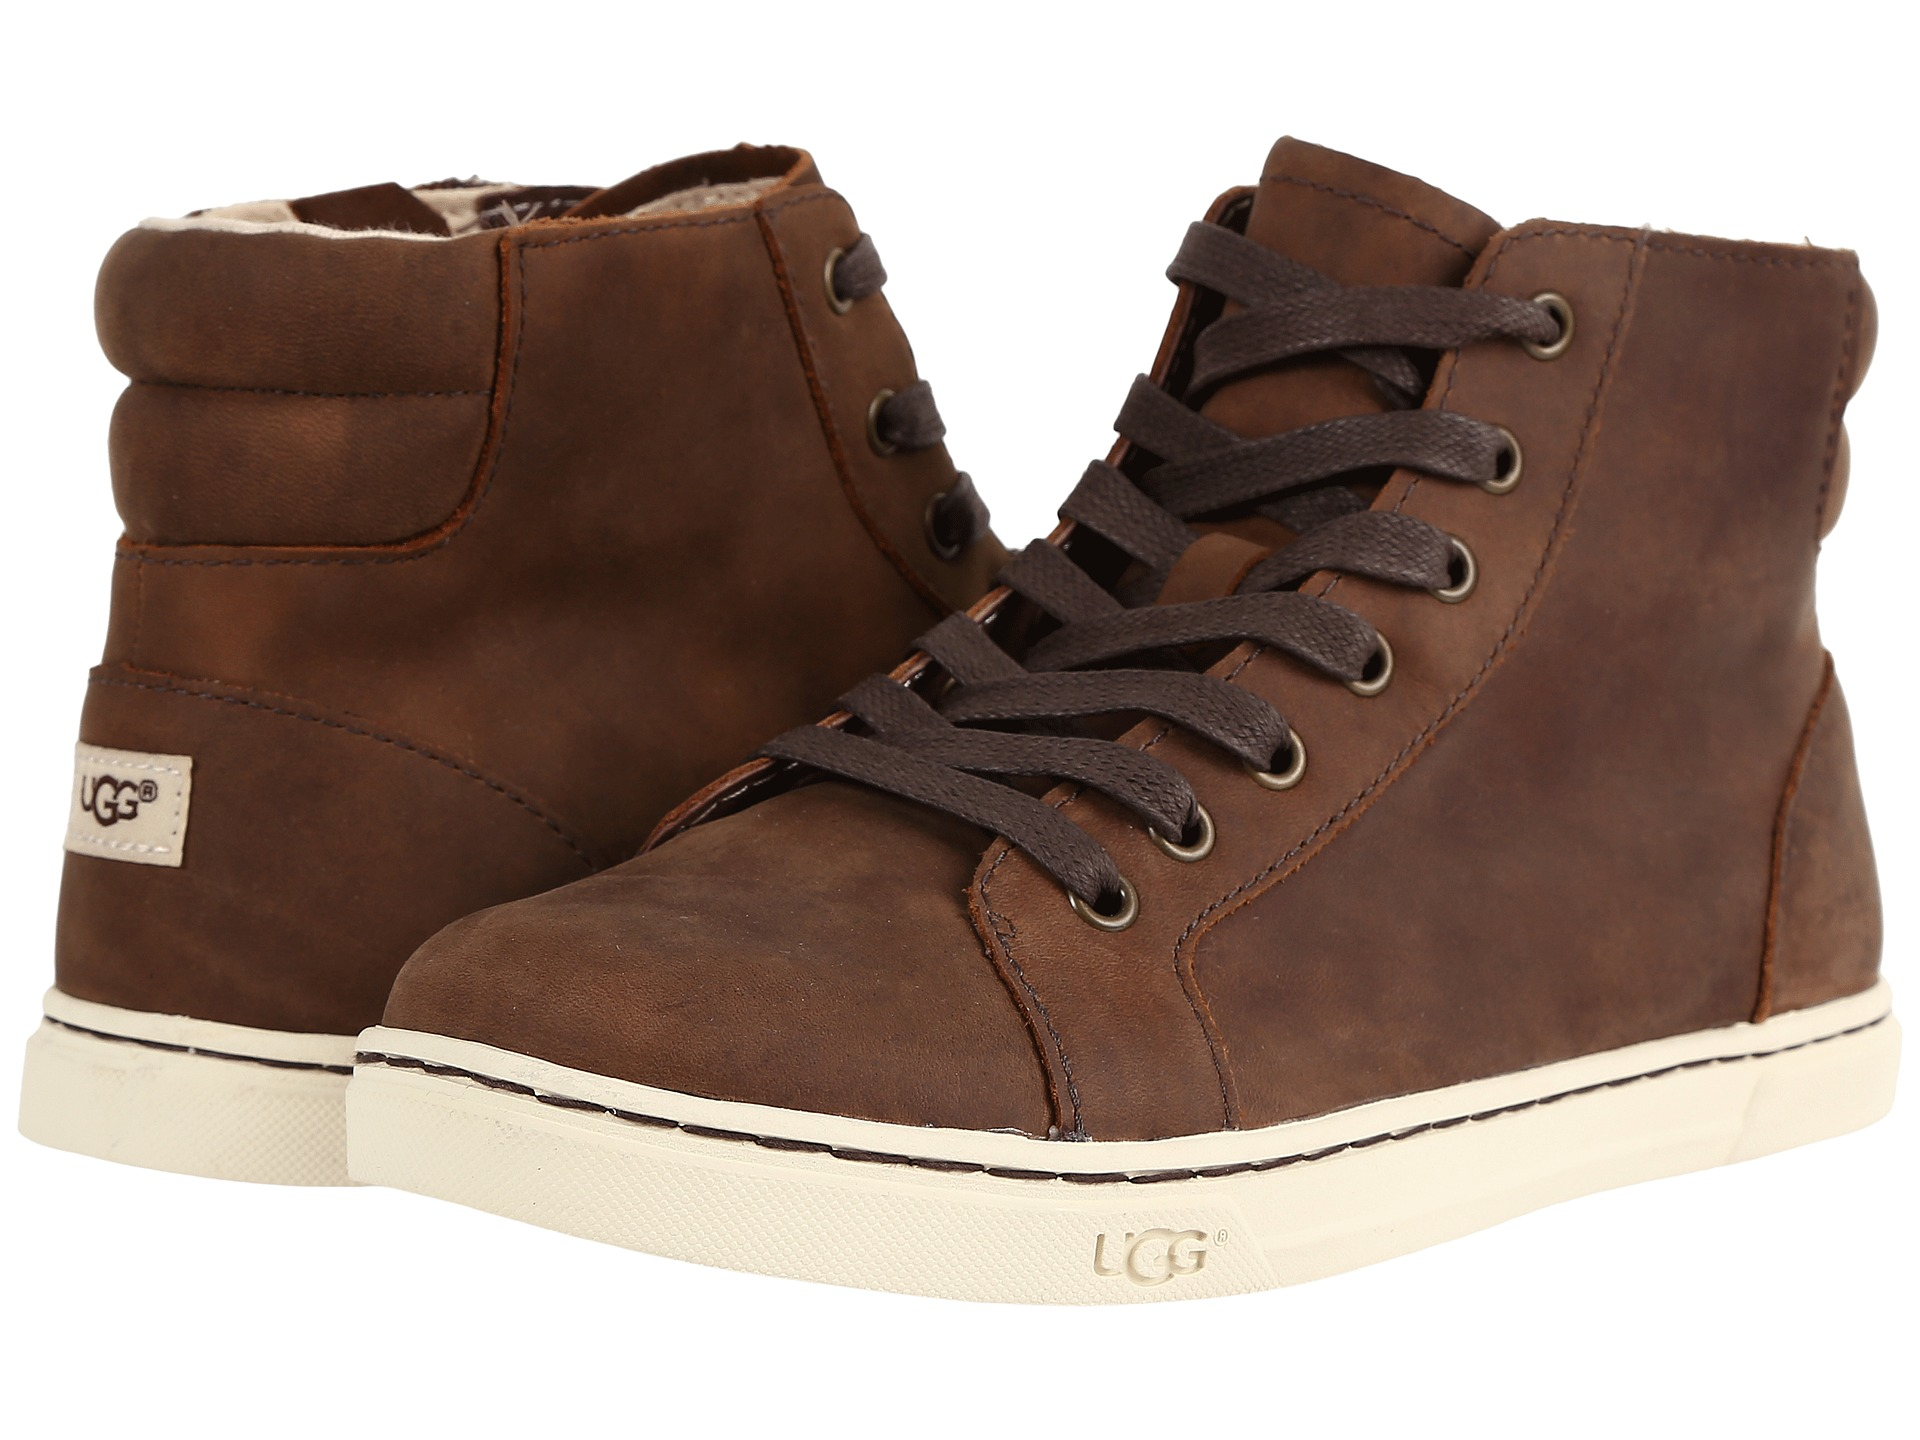 UGG Croft Flat Lace Up Ankle Boots in Brown Lyst